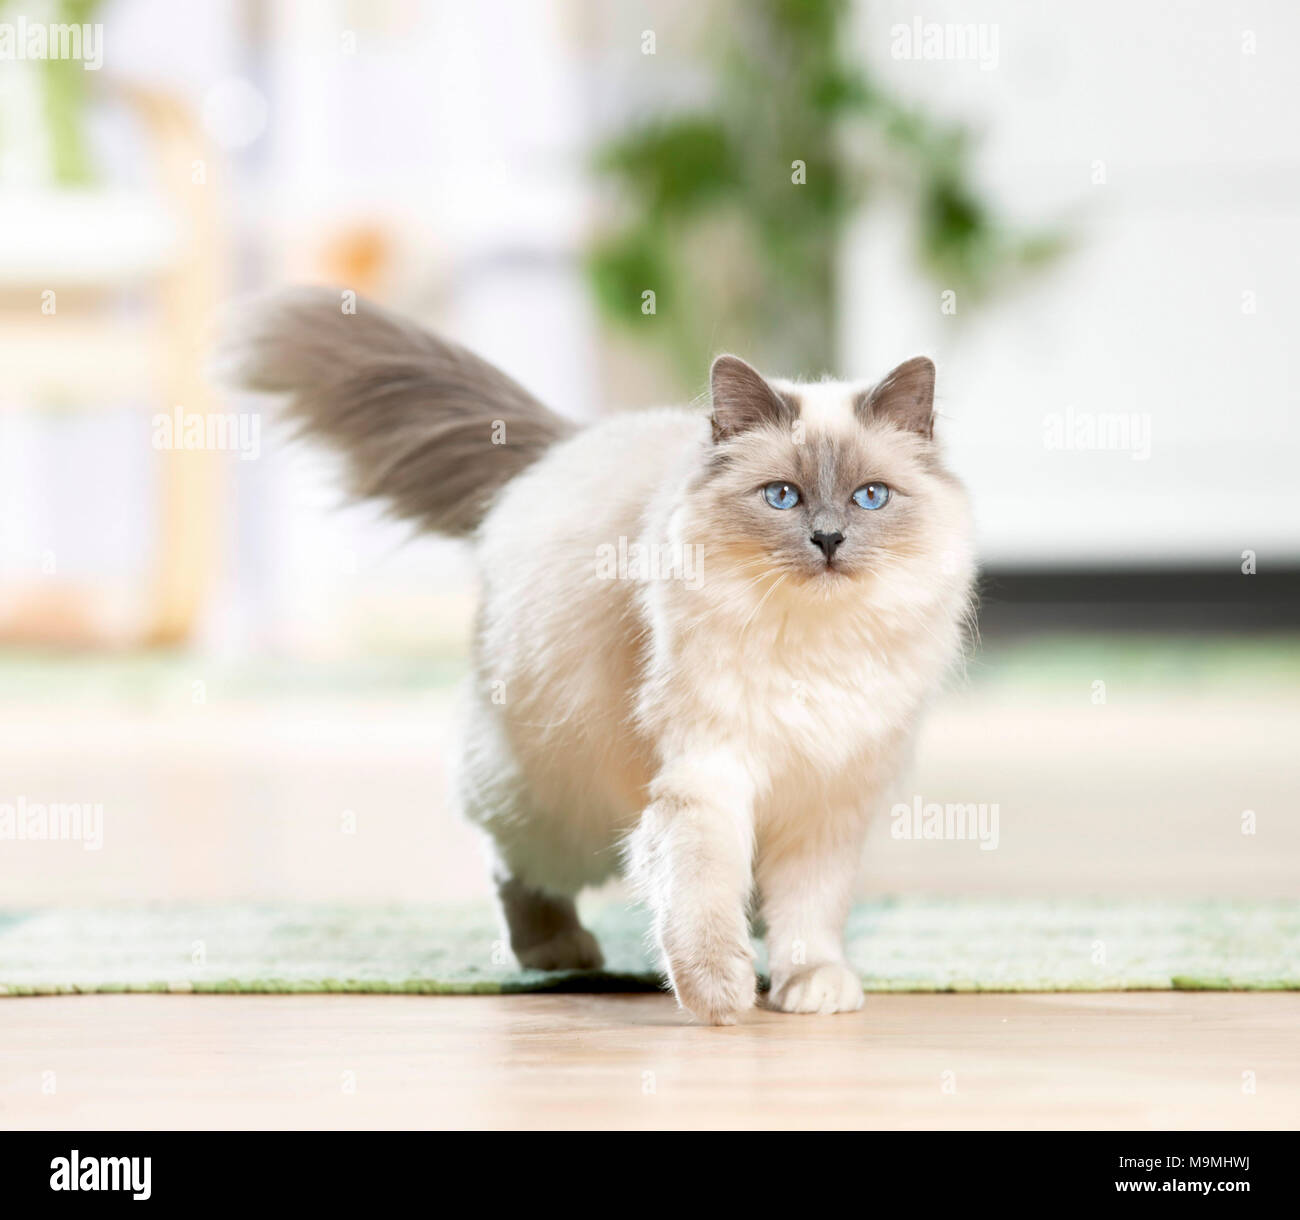 Sacred Birman. Adult cat walking in a living room. Germany Stock Photo